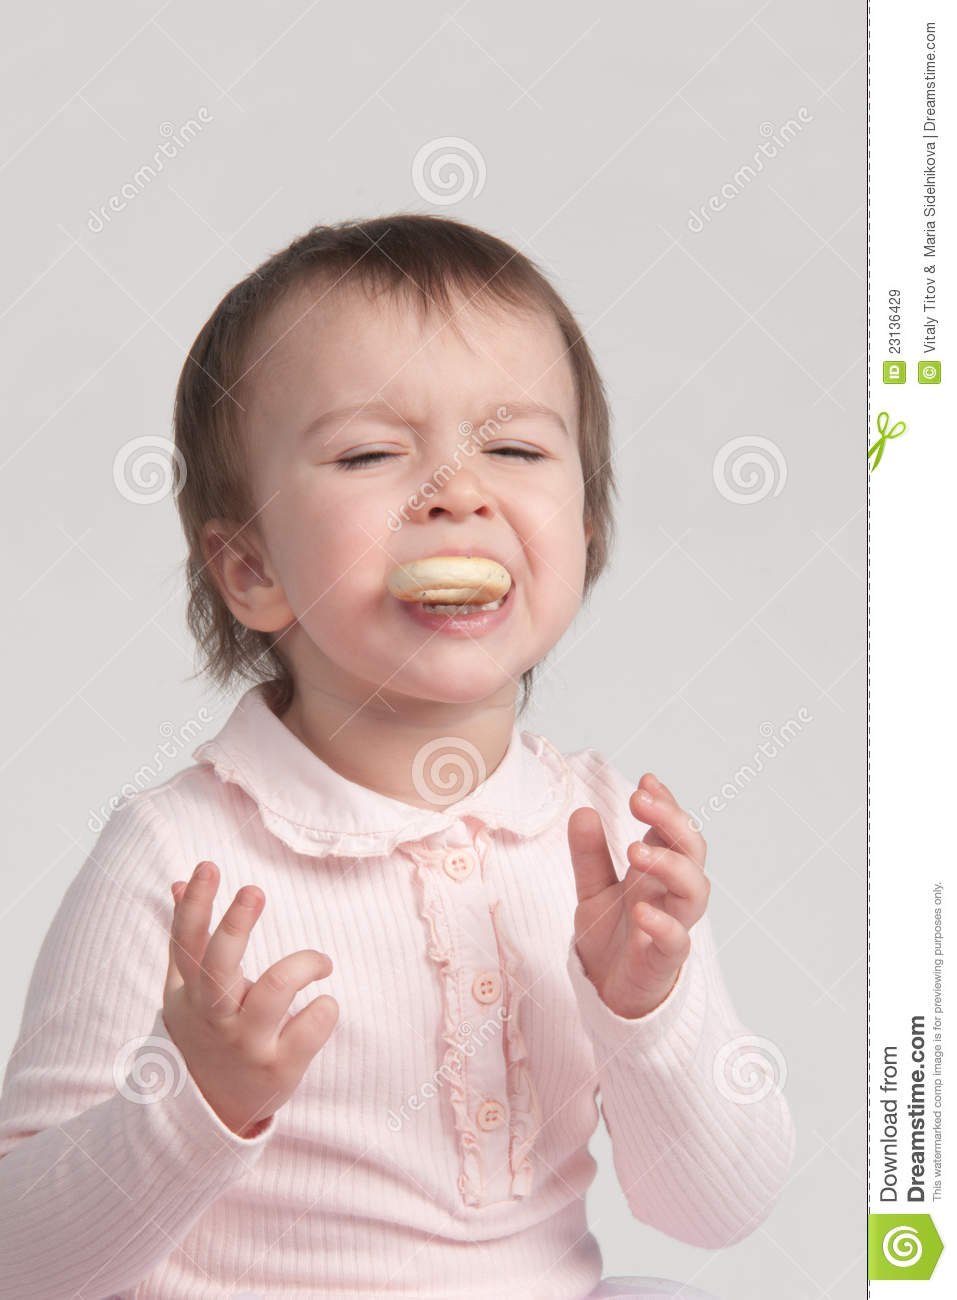 little girl crying eating cookies royalty free stock